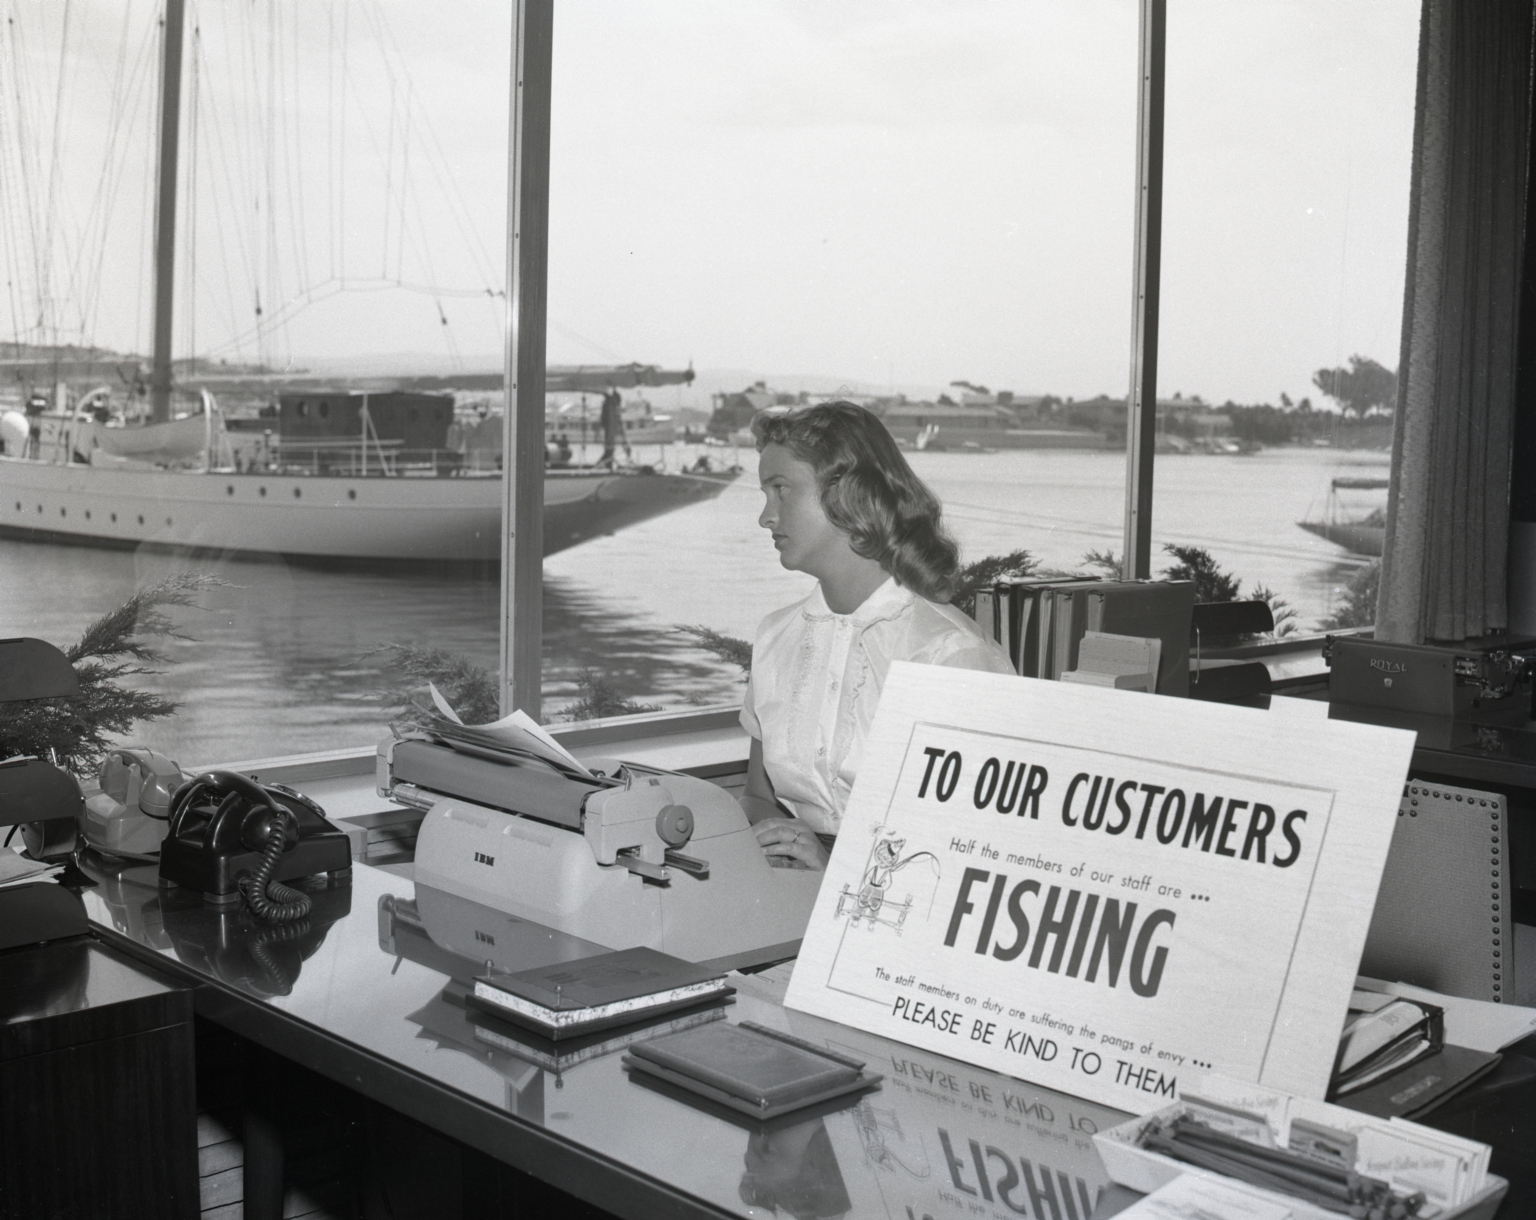 """Didn't go fishing."" Employee of Newport Balboa Savings and Loan looking forlorn as she sits next to a sign that reads ""TO OUR CUSTOMERS, Half the members of our staff are . . . FISHING. The staff members on dury are suffering the pangs of envy, PLEASE BE KIND TO THEM!"" The yacht Pioneer is anchored in the background."